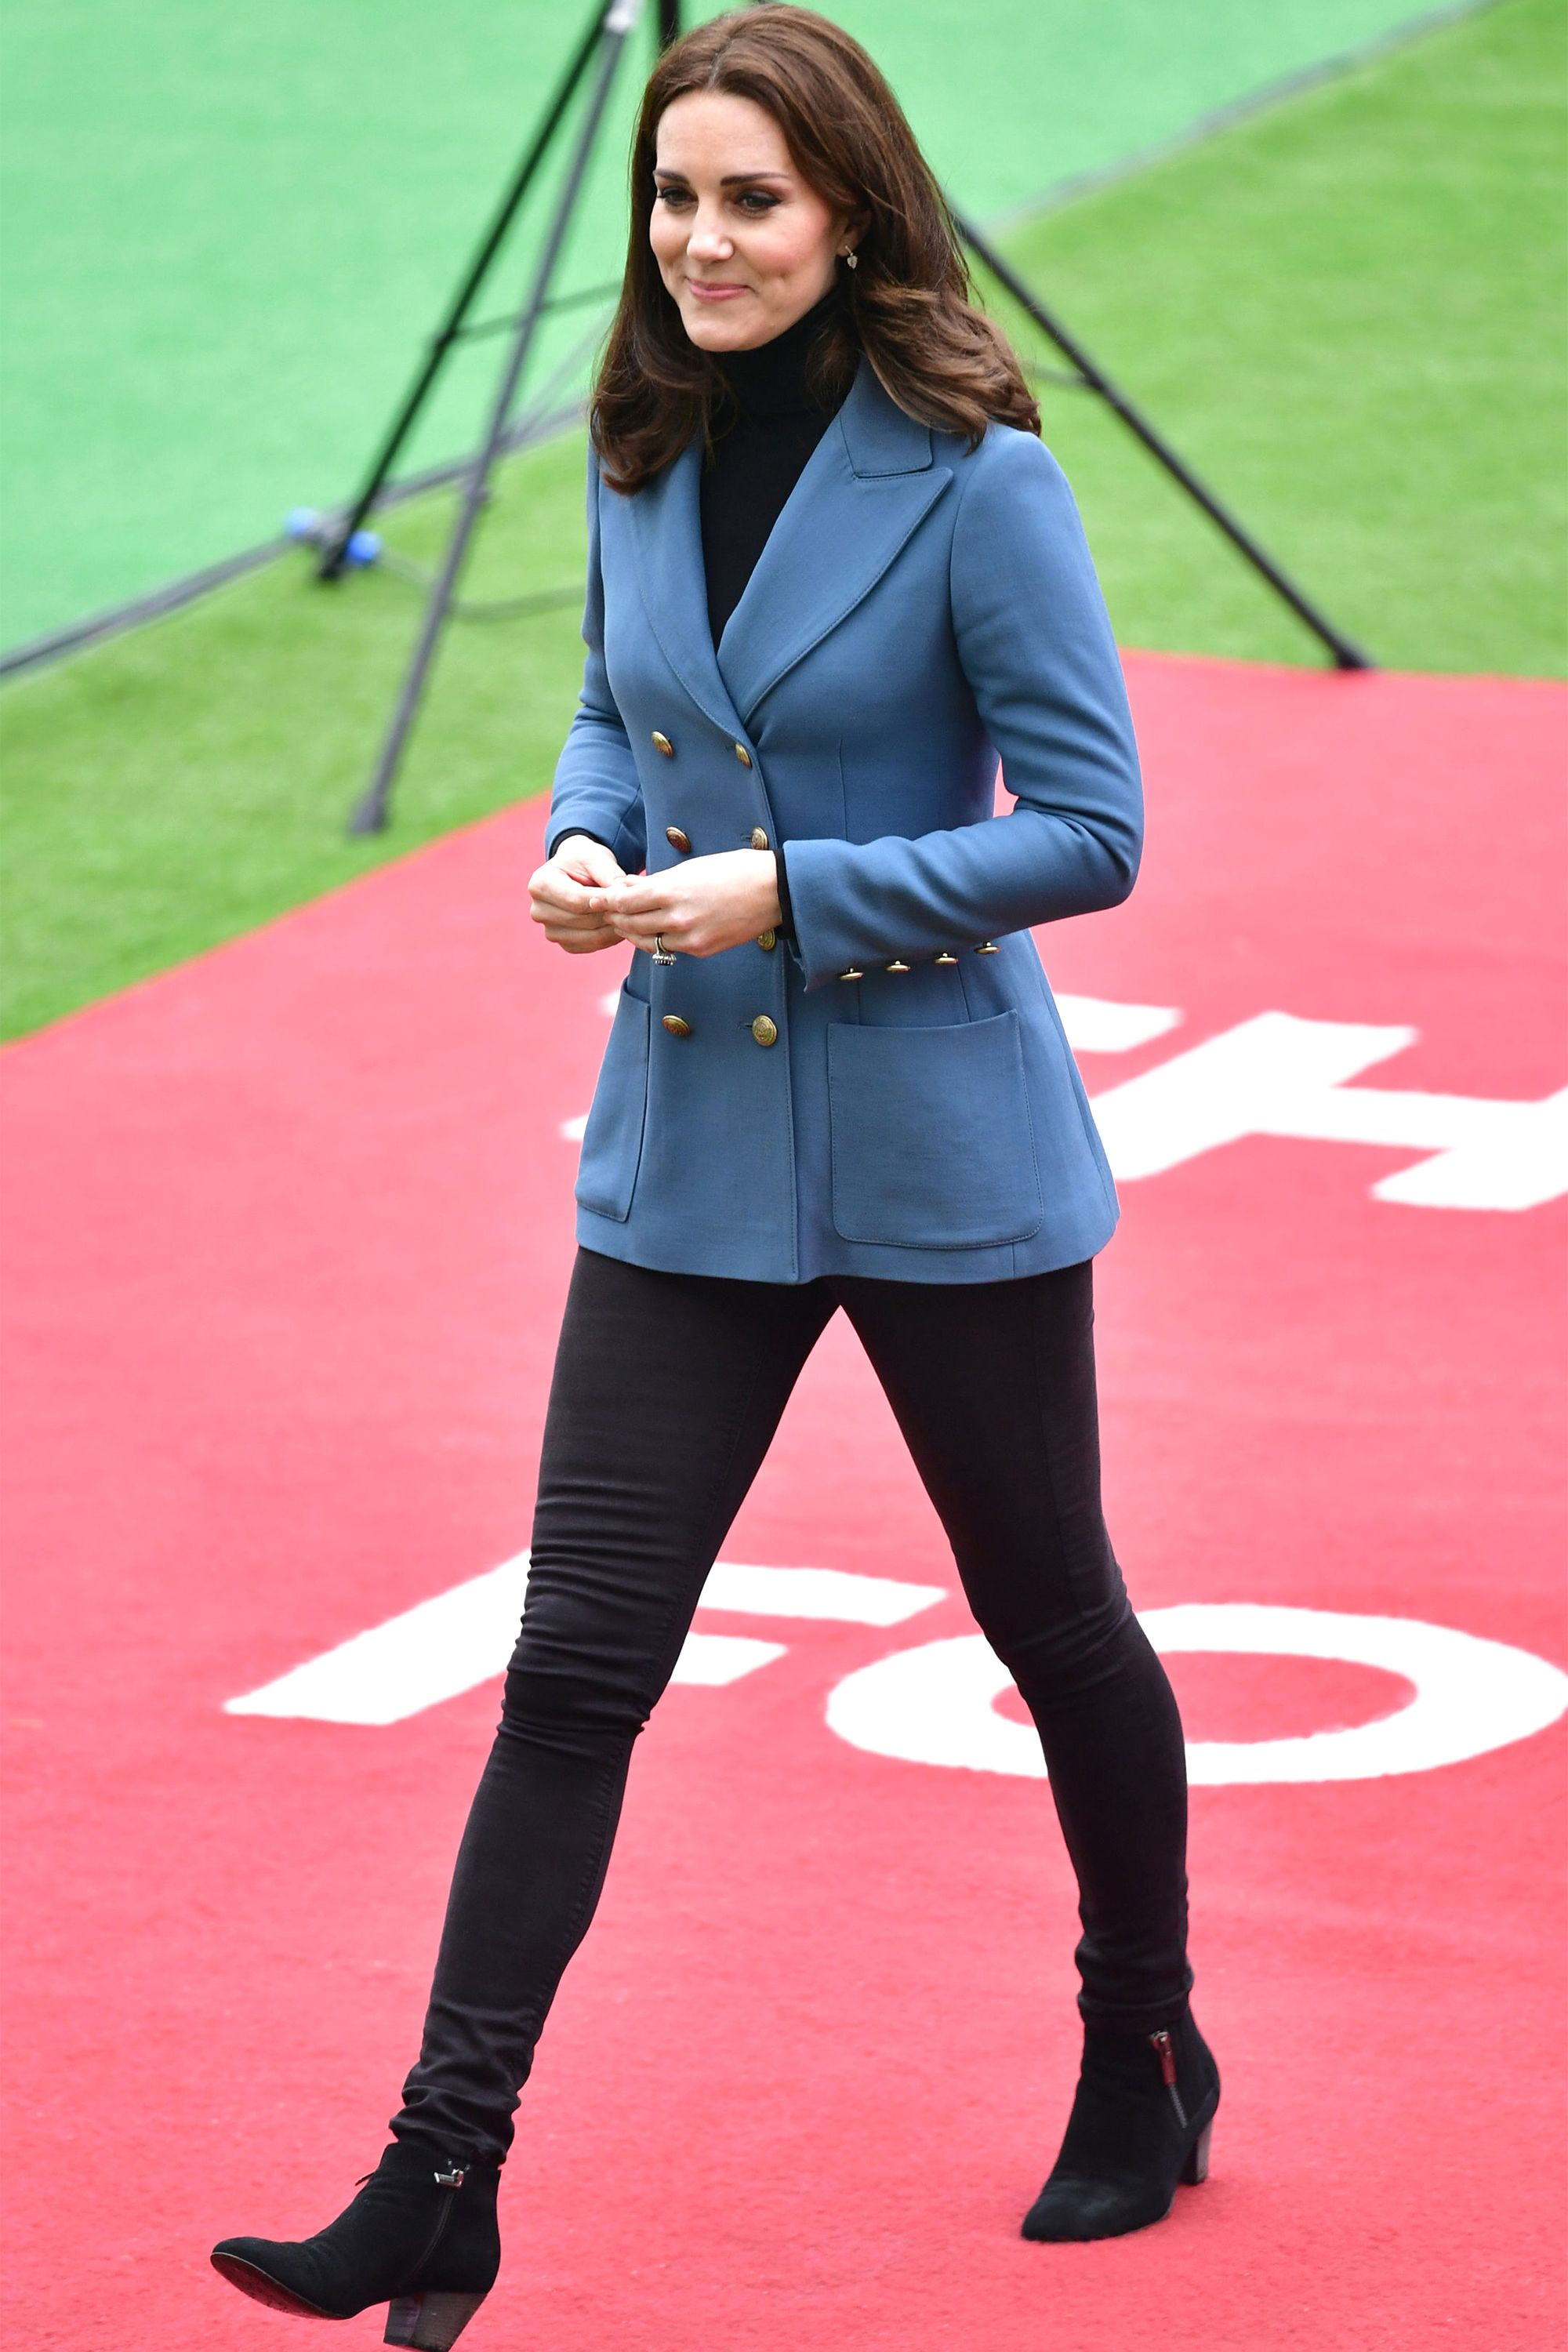 dca8213d2e0 Kate Middleton s Best Style Moments - The Duchess of Cambridge s Most  Fashionable Outfits